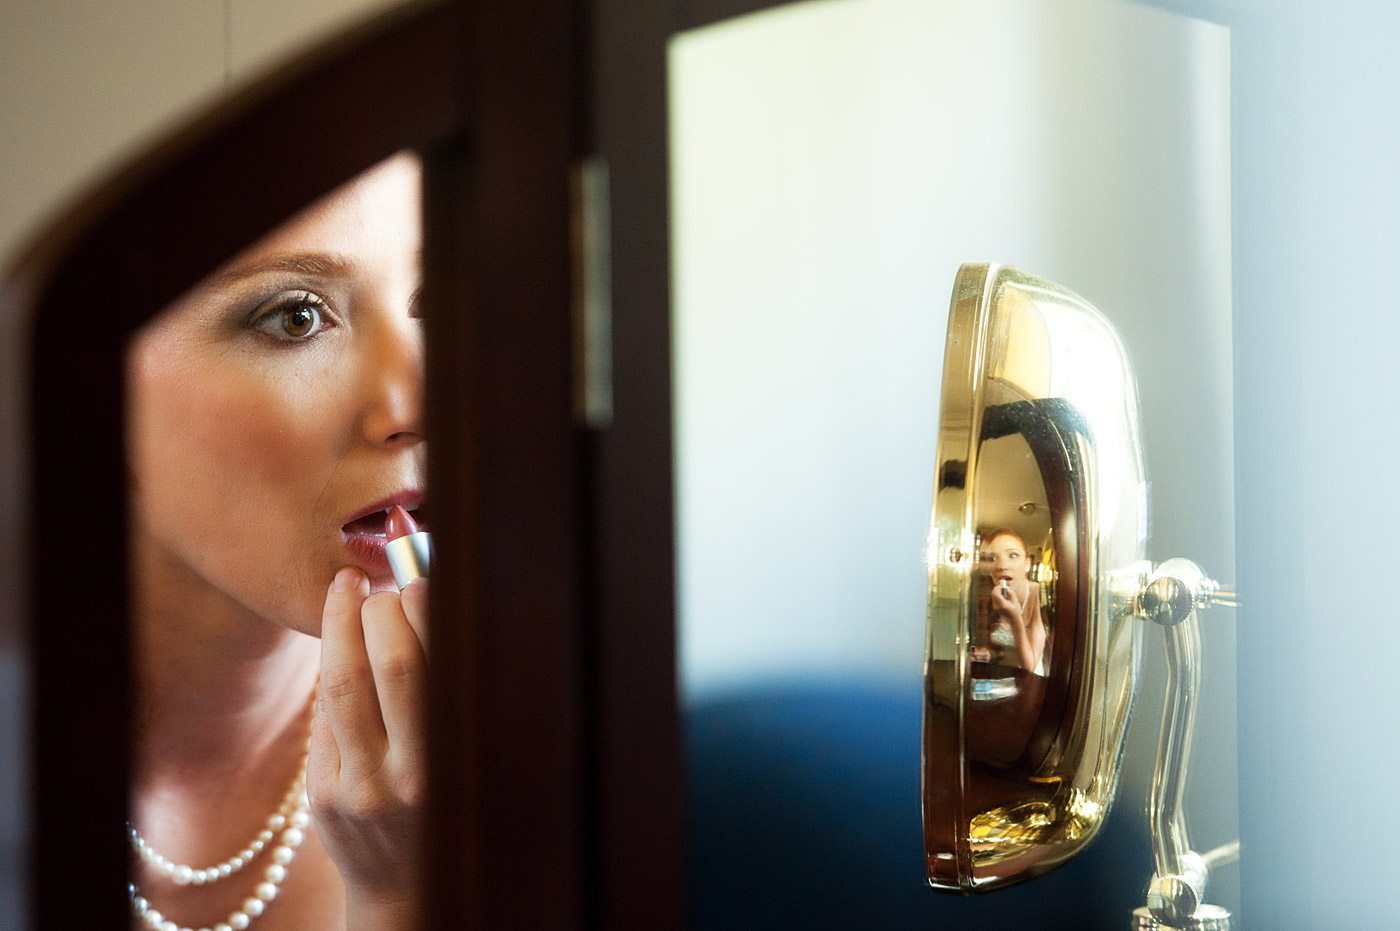 bride putting on lipstick in the mirror.